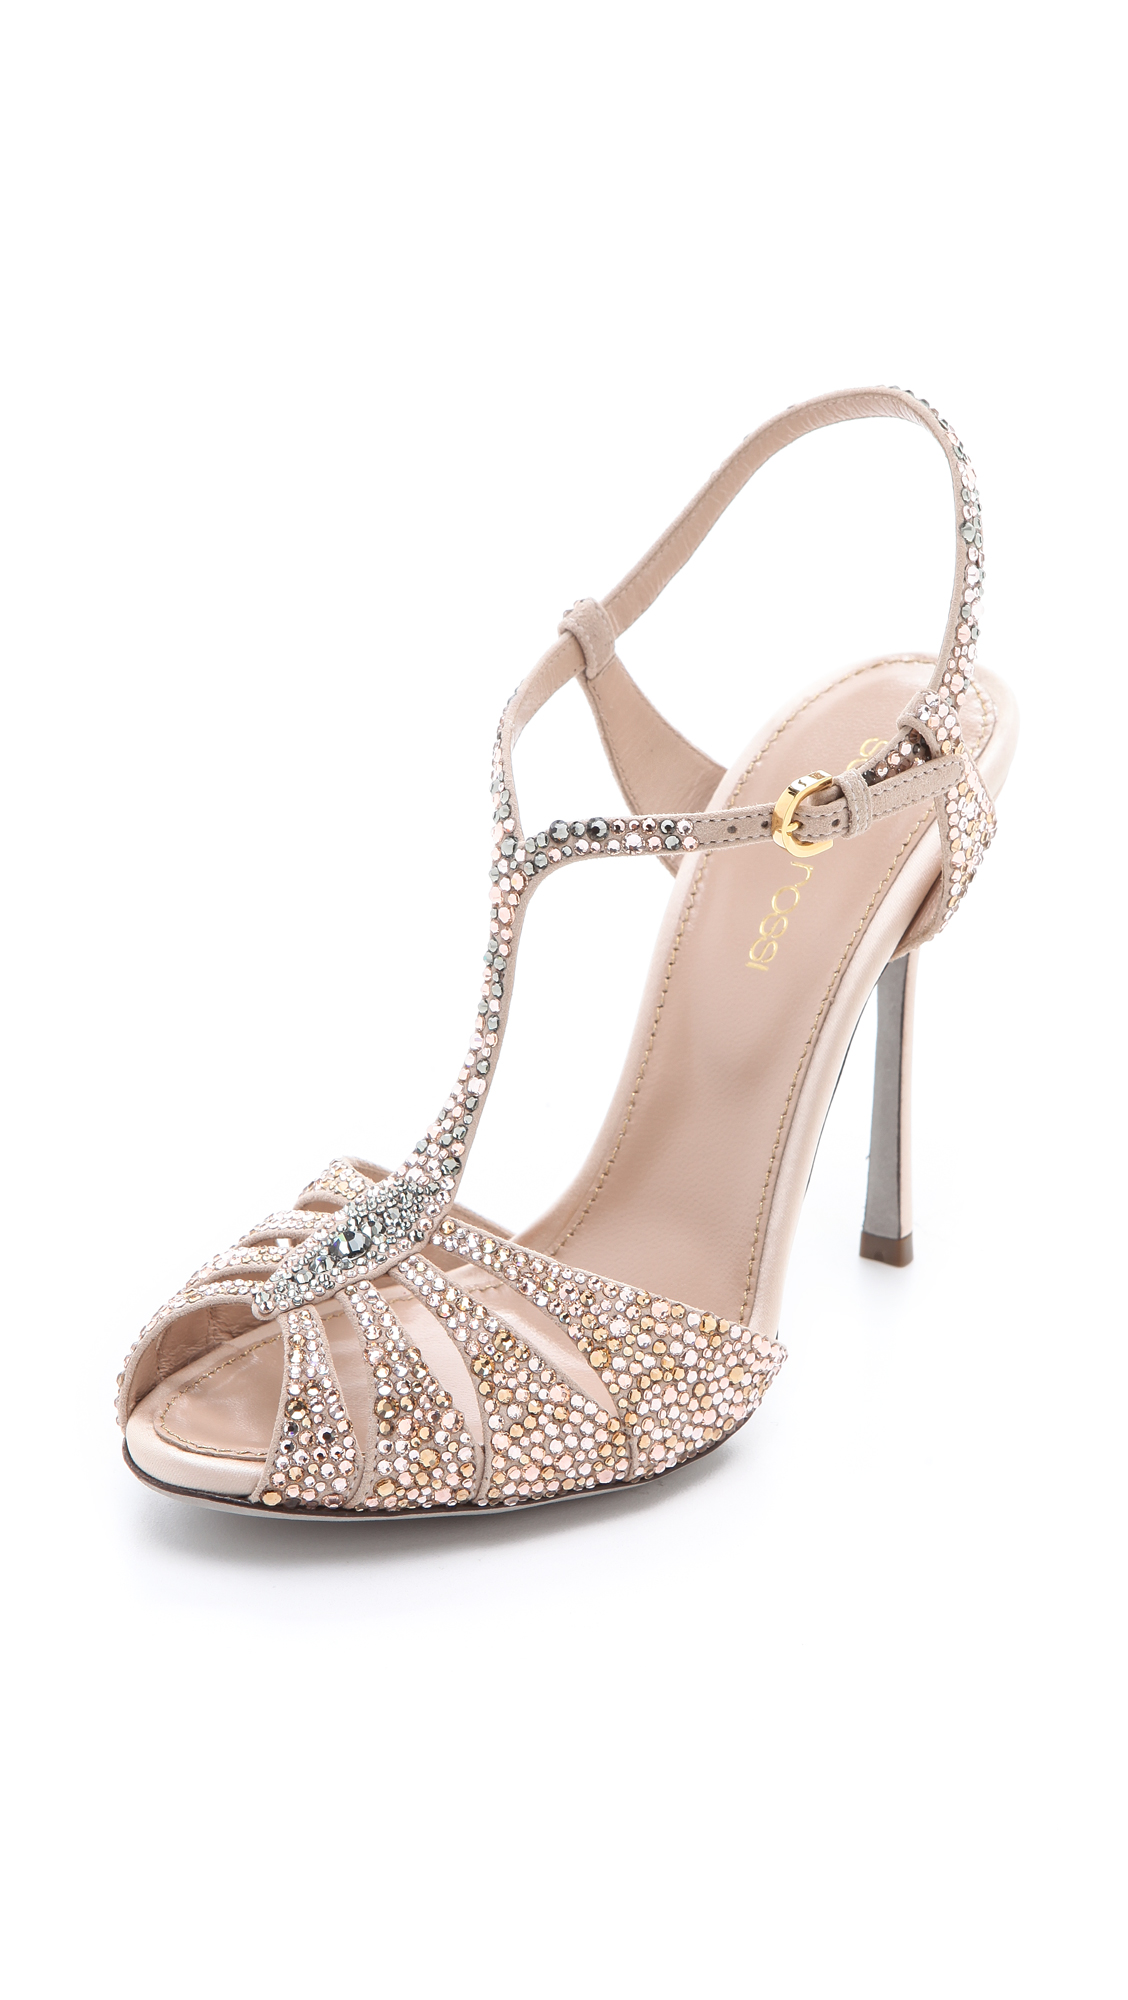 Sergio Rossi Nude Suede Sandals at SHOPBOP.COM - FASTEST FREE SHIPPING WORLDWIDE. Buy Sergio Rossi Online